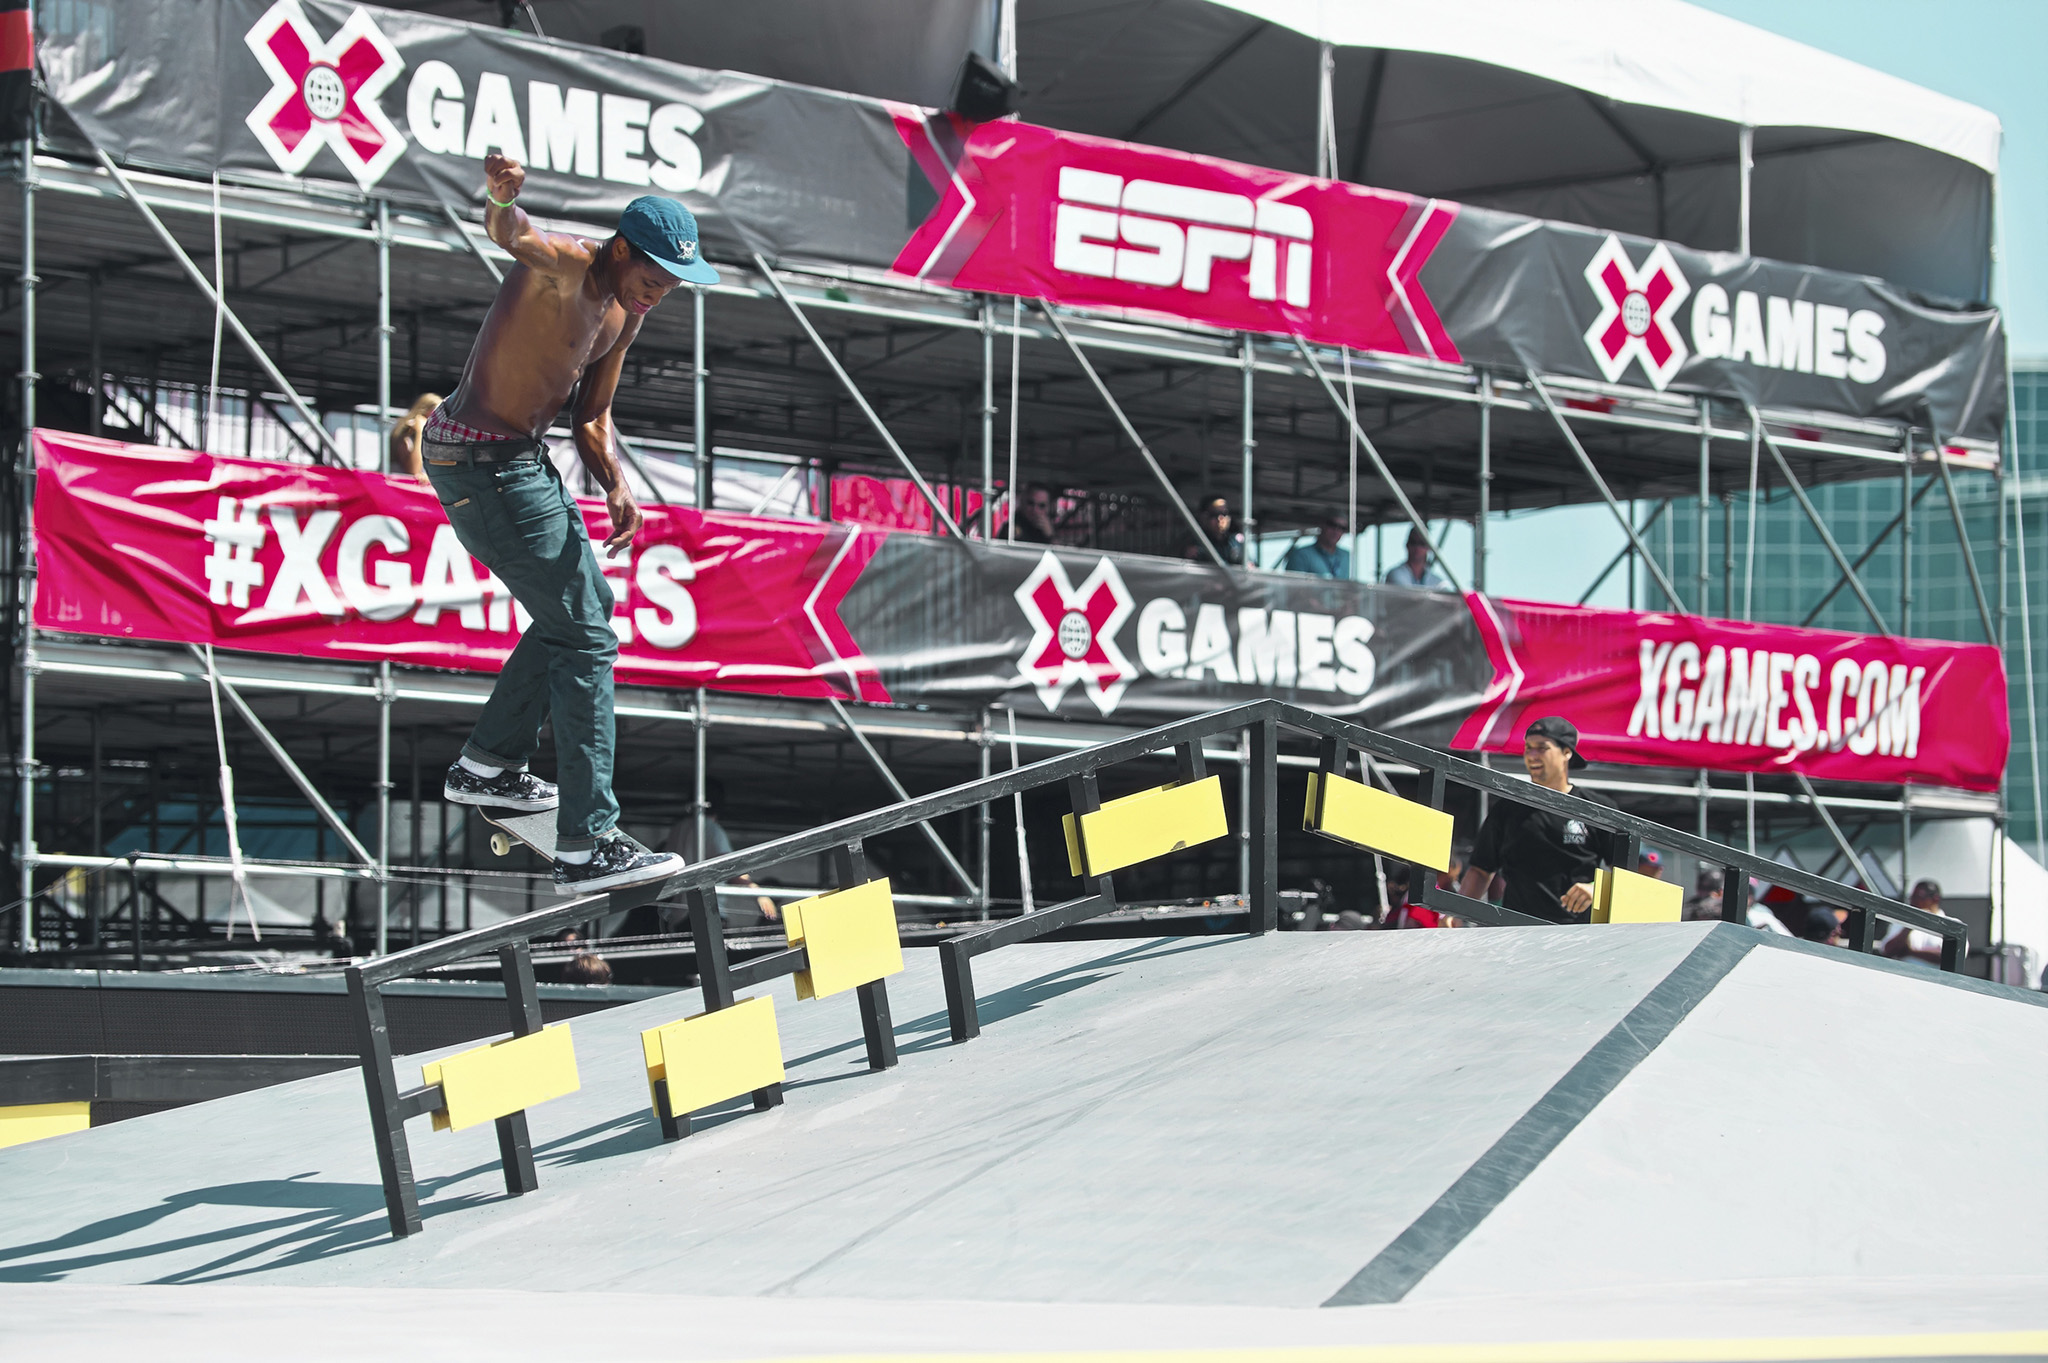 Wair at X Games Los Angeles 2013